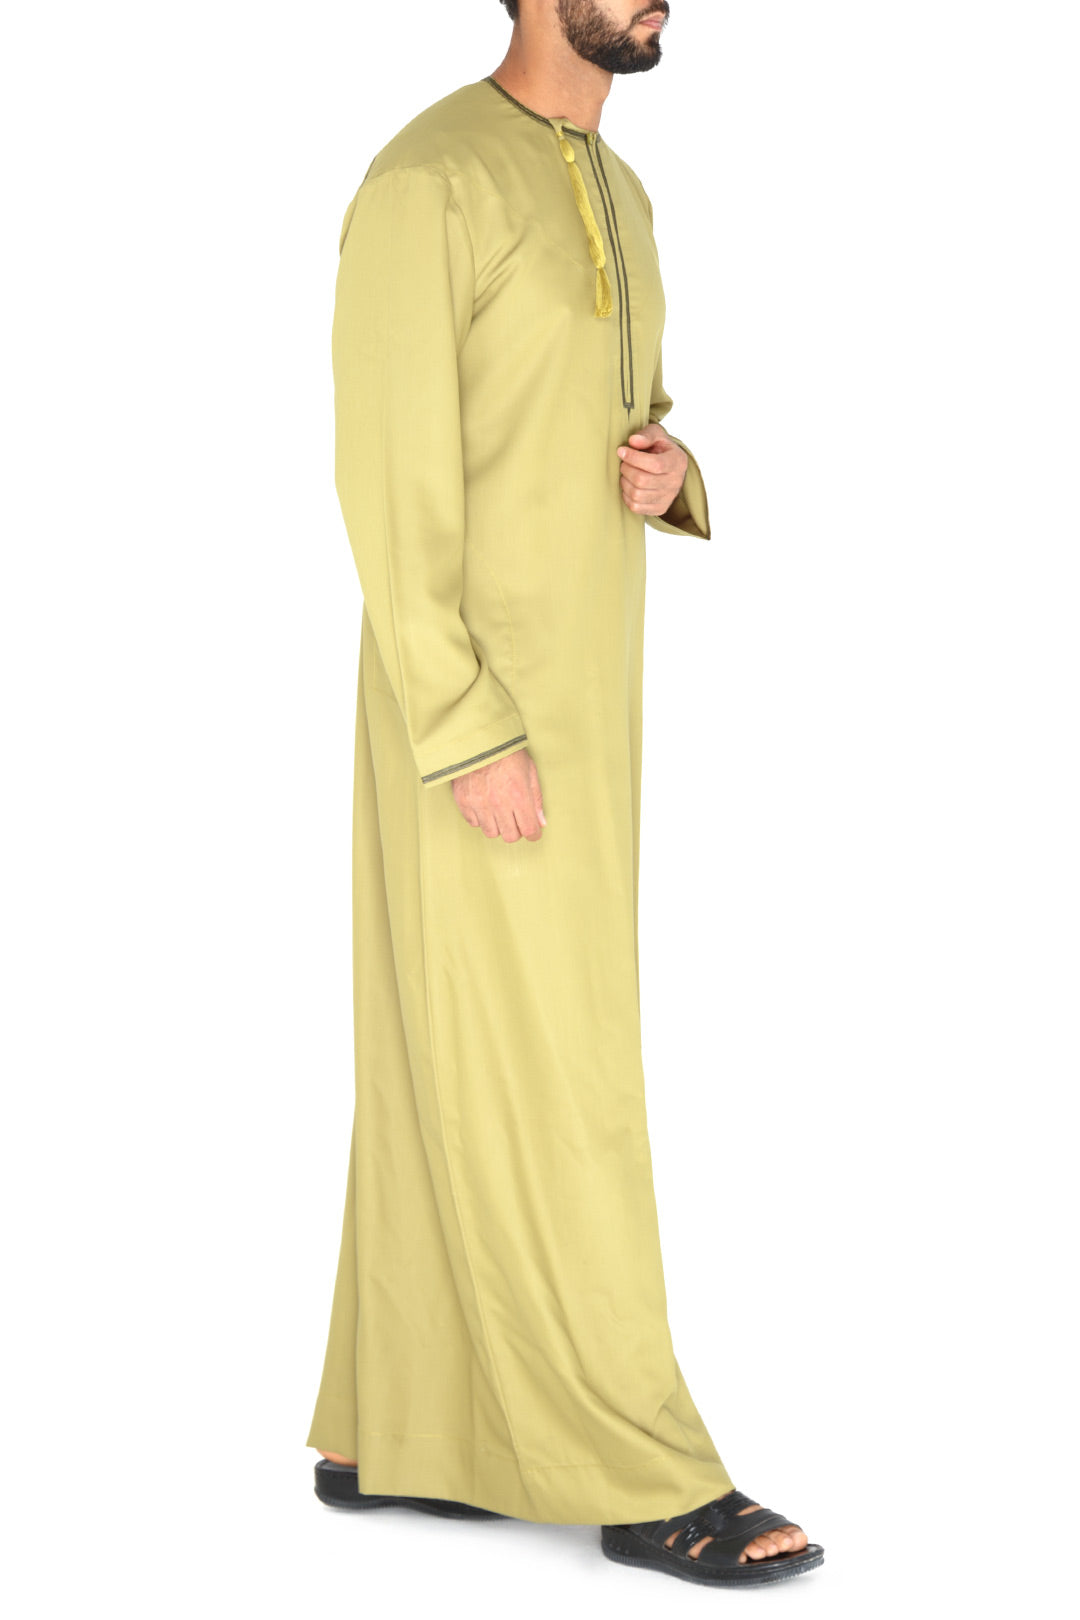 Olive Embroidered Side Tarboush